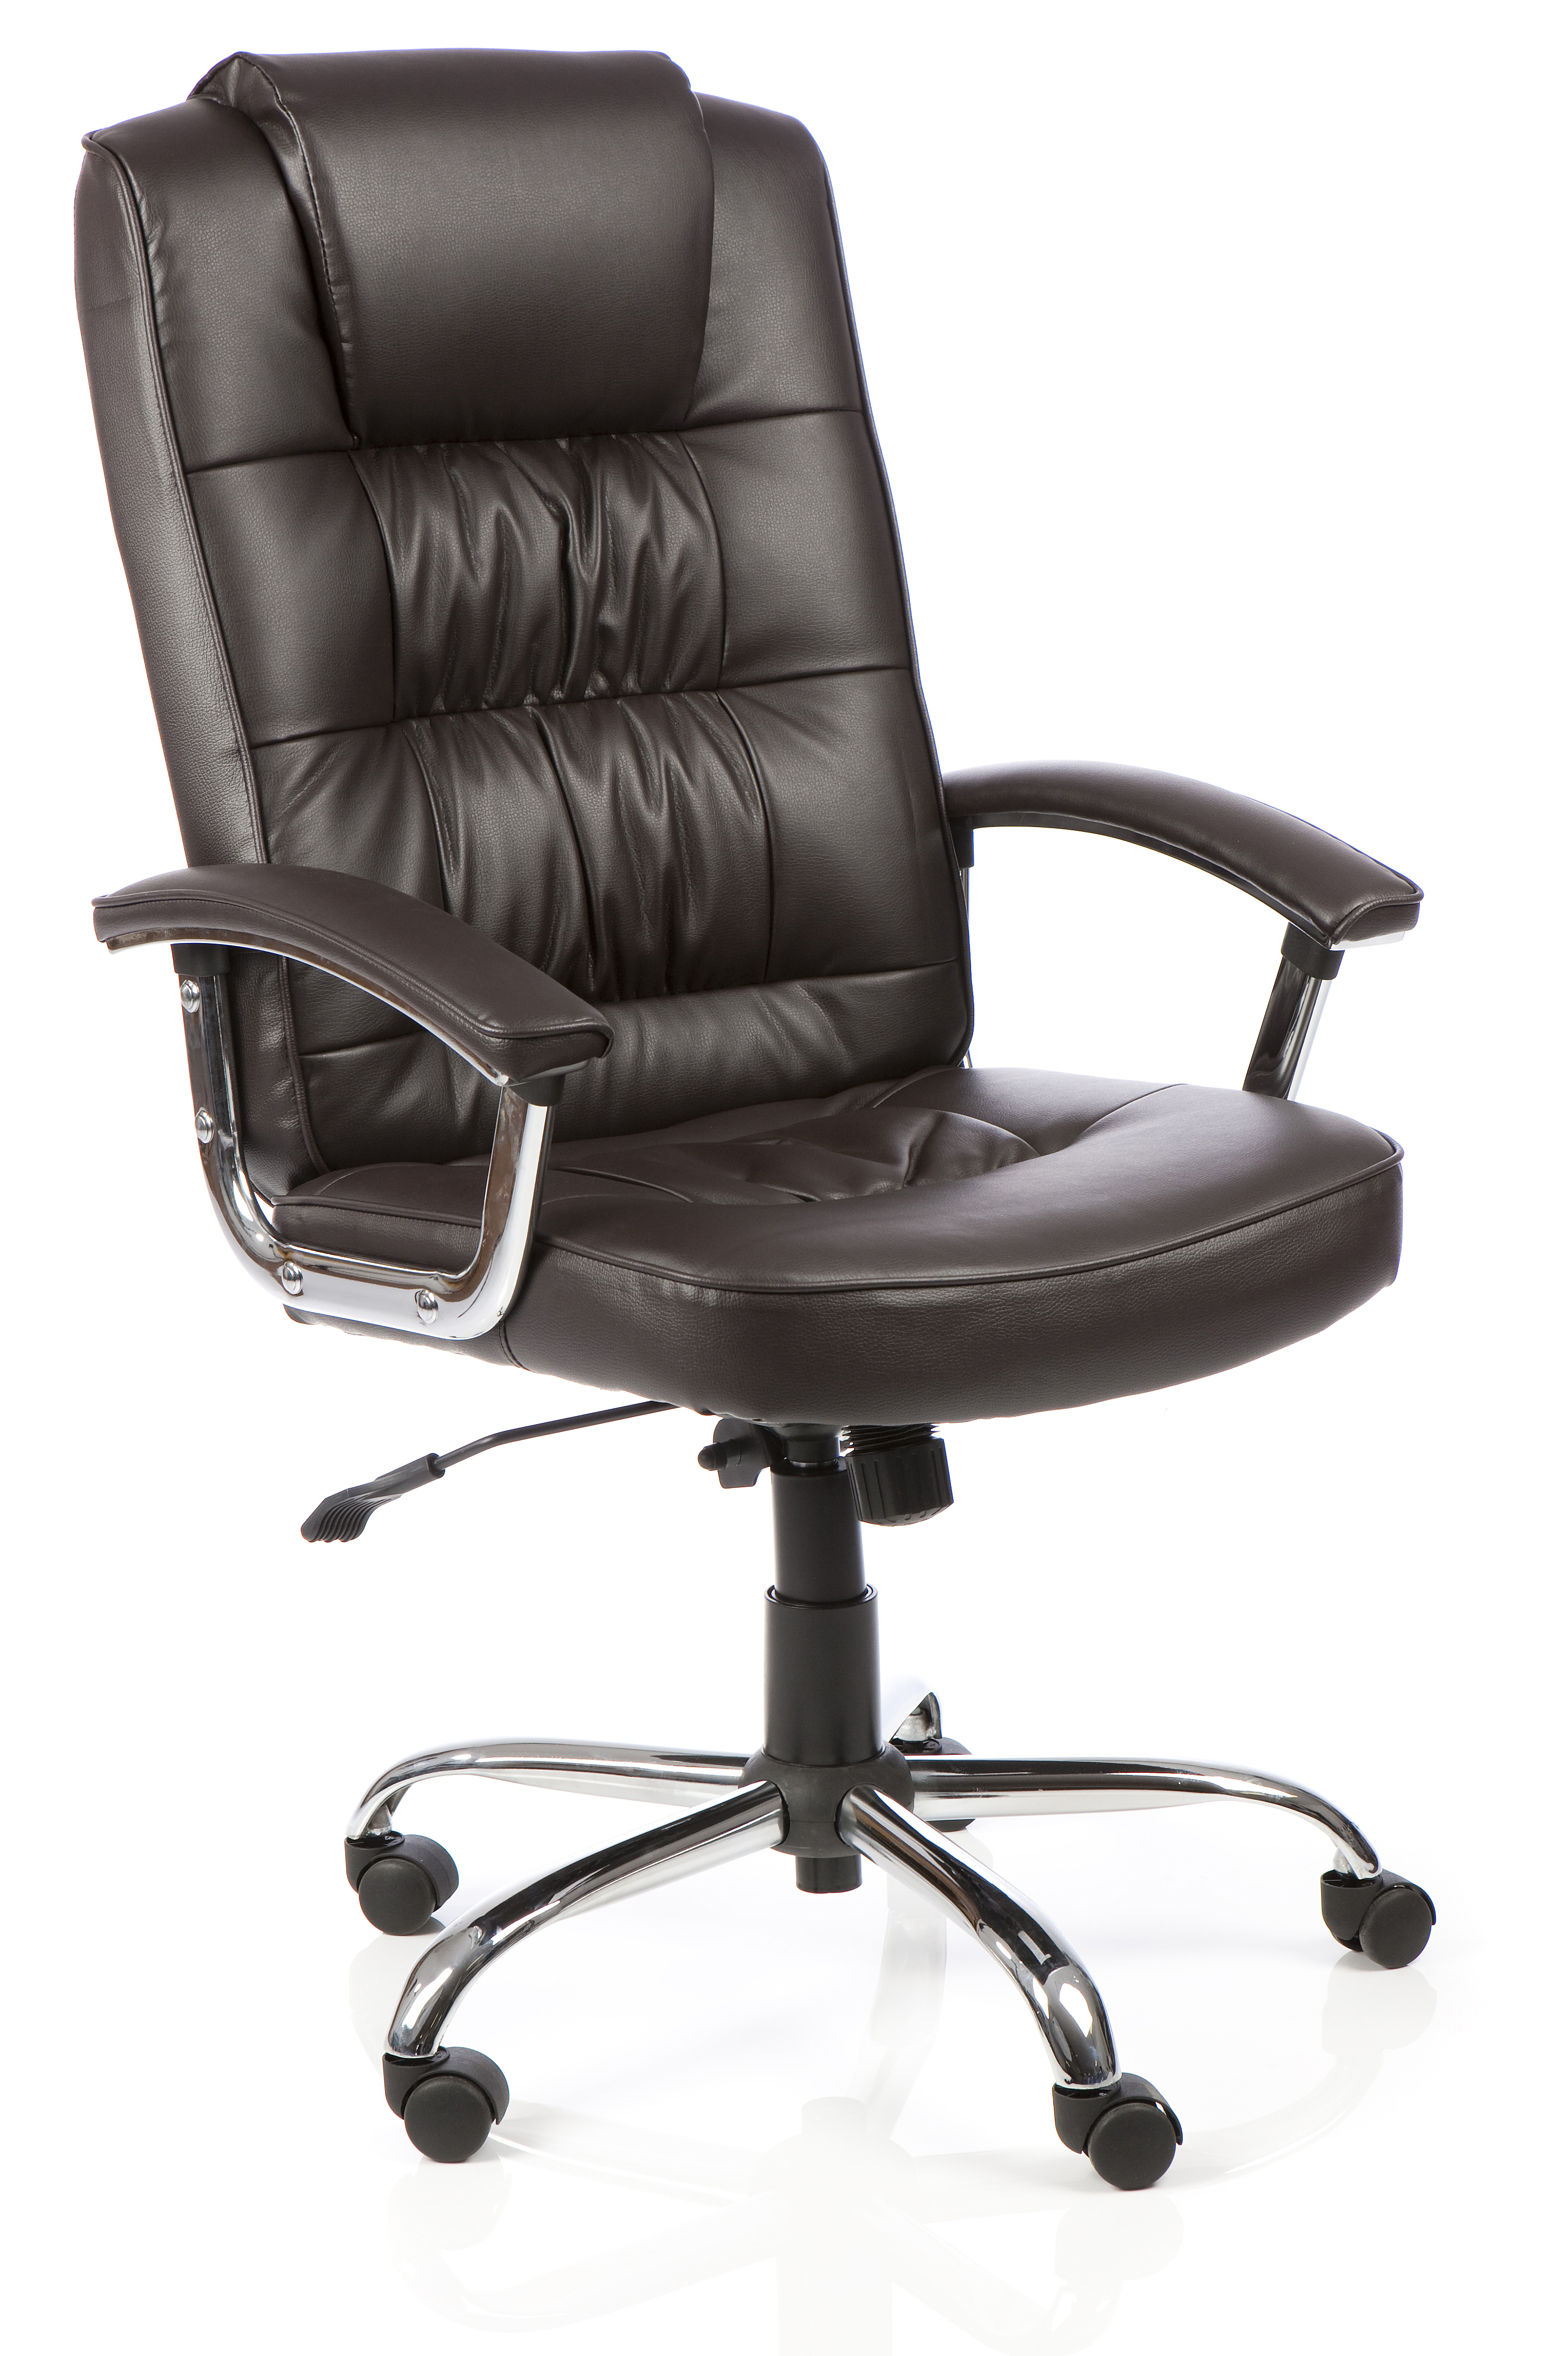 Moore-Deluxe-Brown-Leather-Executive-Office-Chair-with-Arms